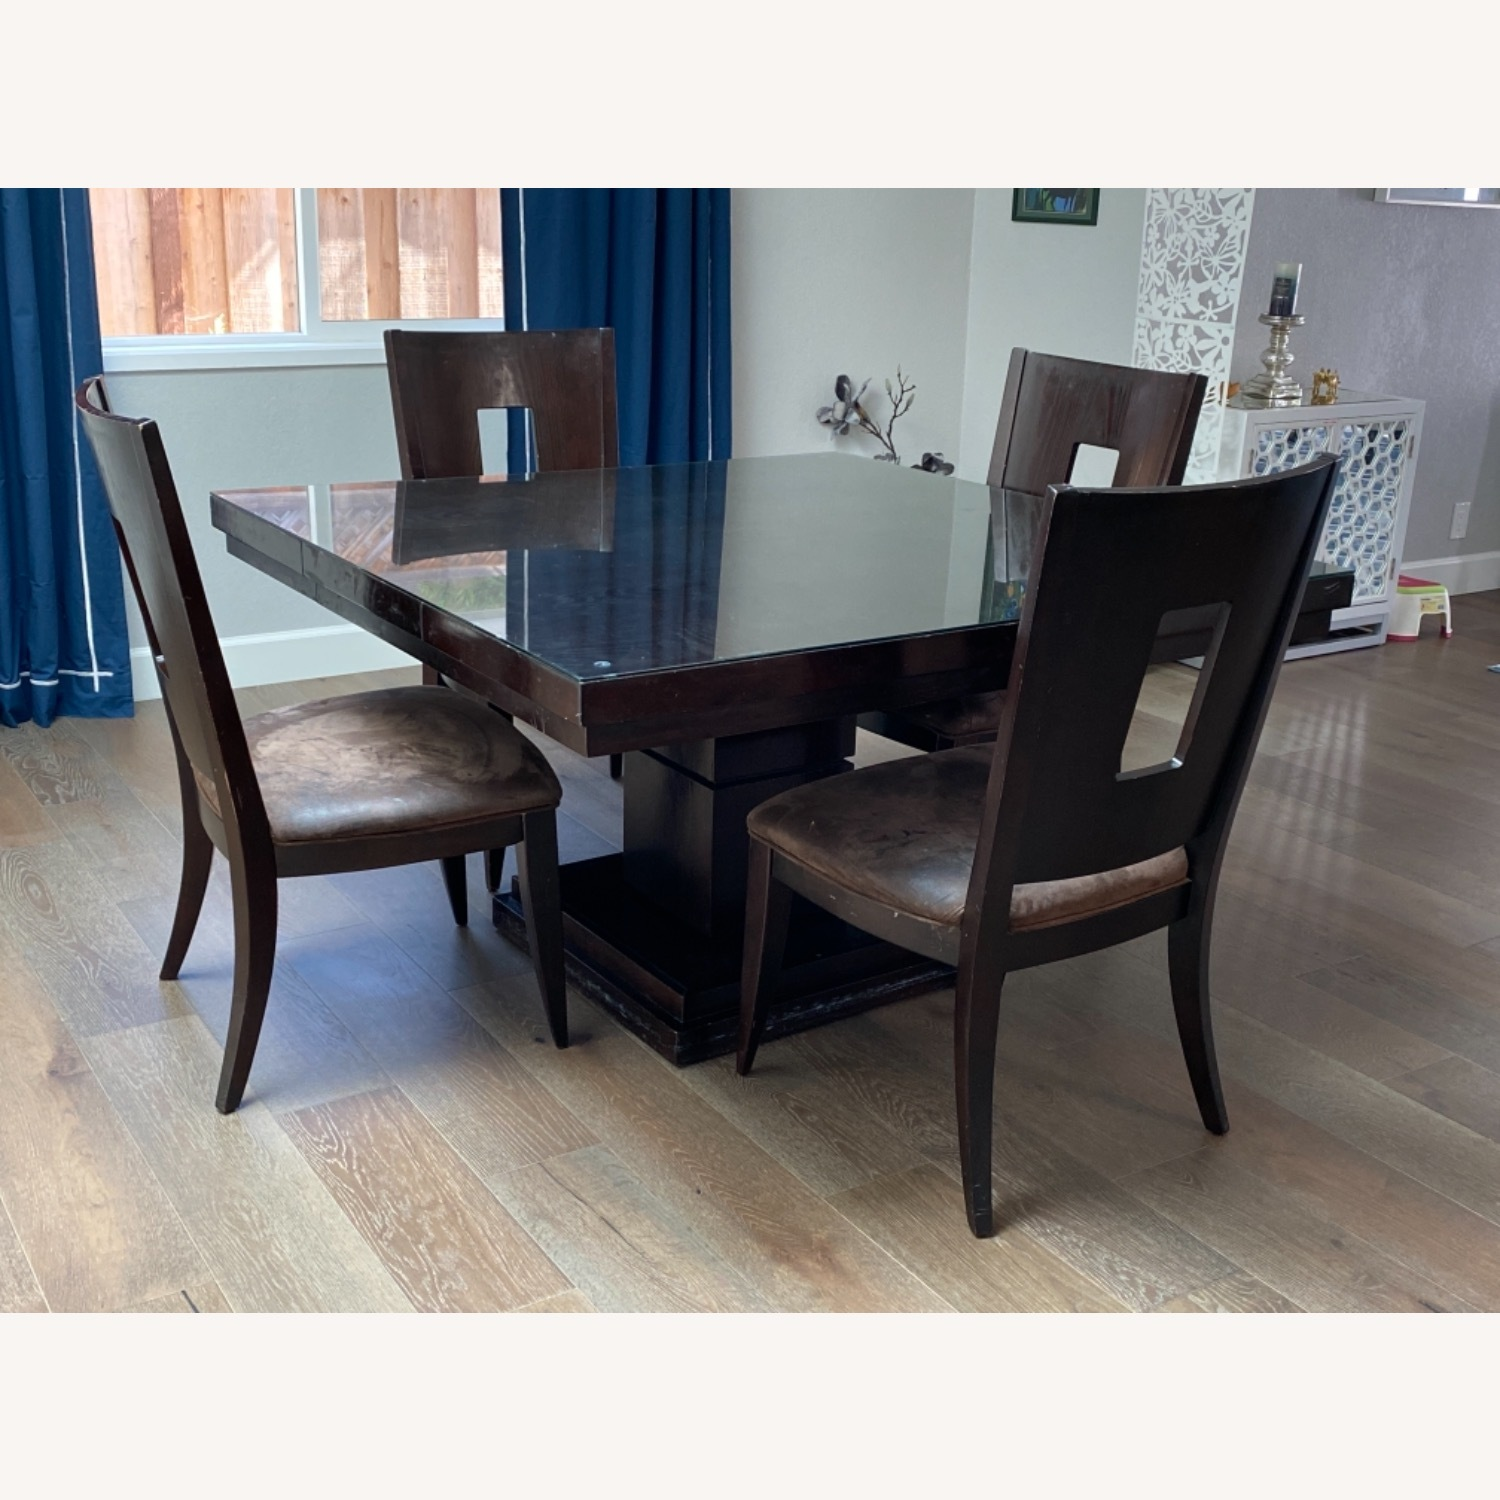 Square Pedestal Wooden Dining Table with 4 Chairs - image-2